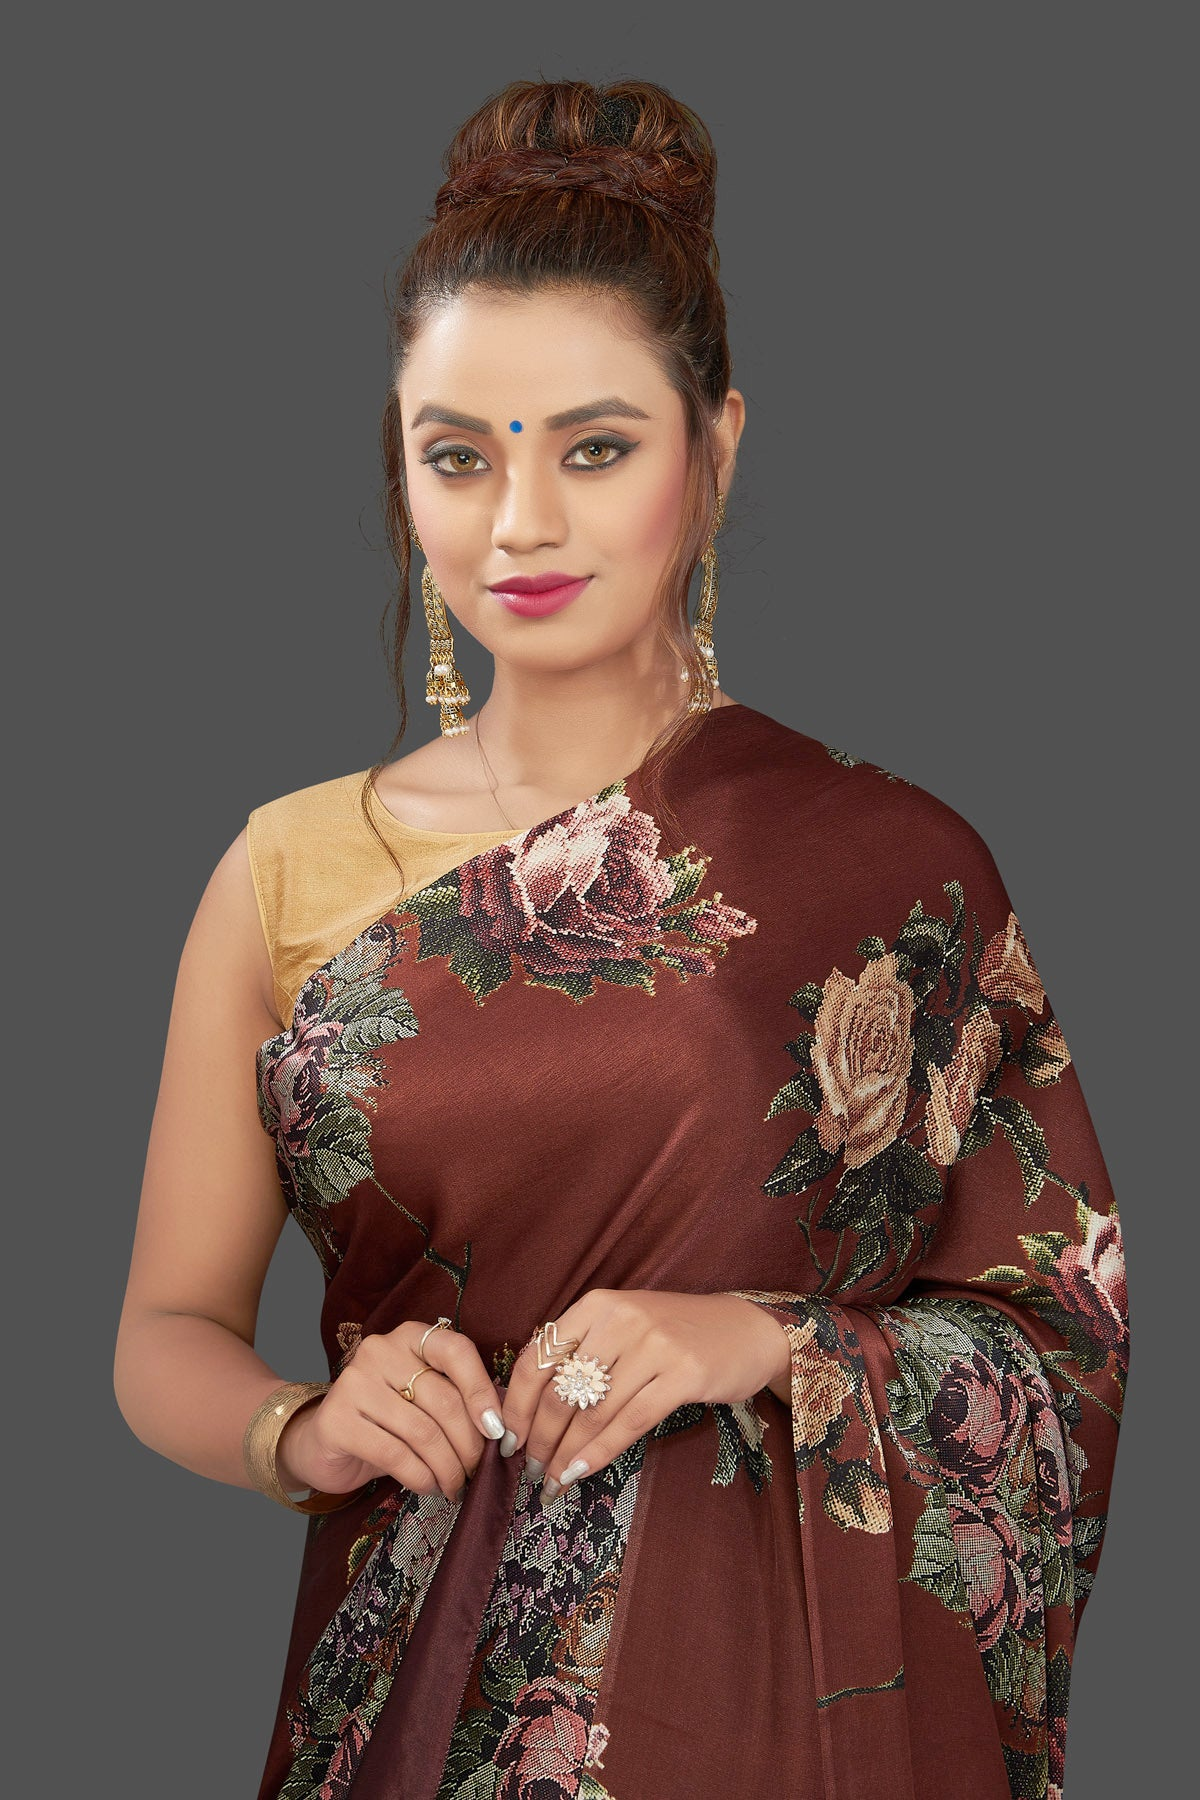 Buy gorgeous brown floral print crepe silk sari online in USA. Shop for weddings and special occasions stunning crepe sarees, printed saris, georgette sarees, designer sarees in USA from Pure Elegance Indian clothing store in USA. Shop online now.-closeup